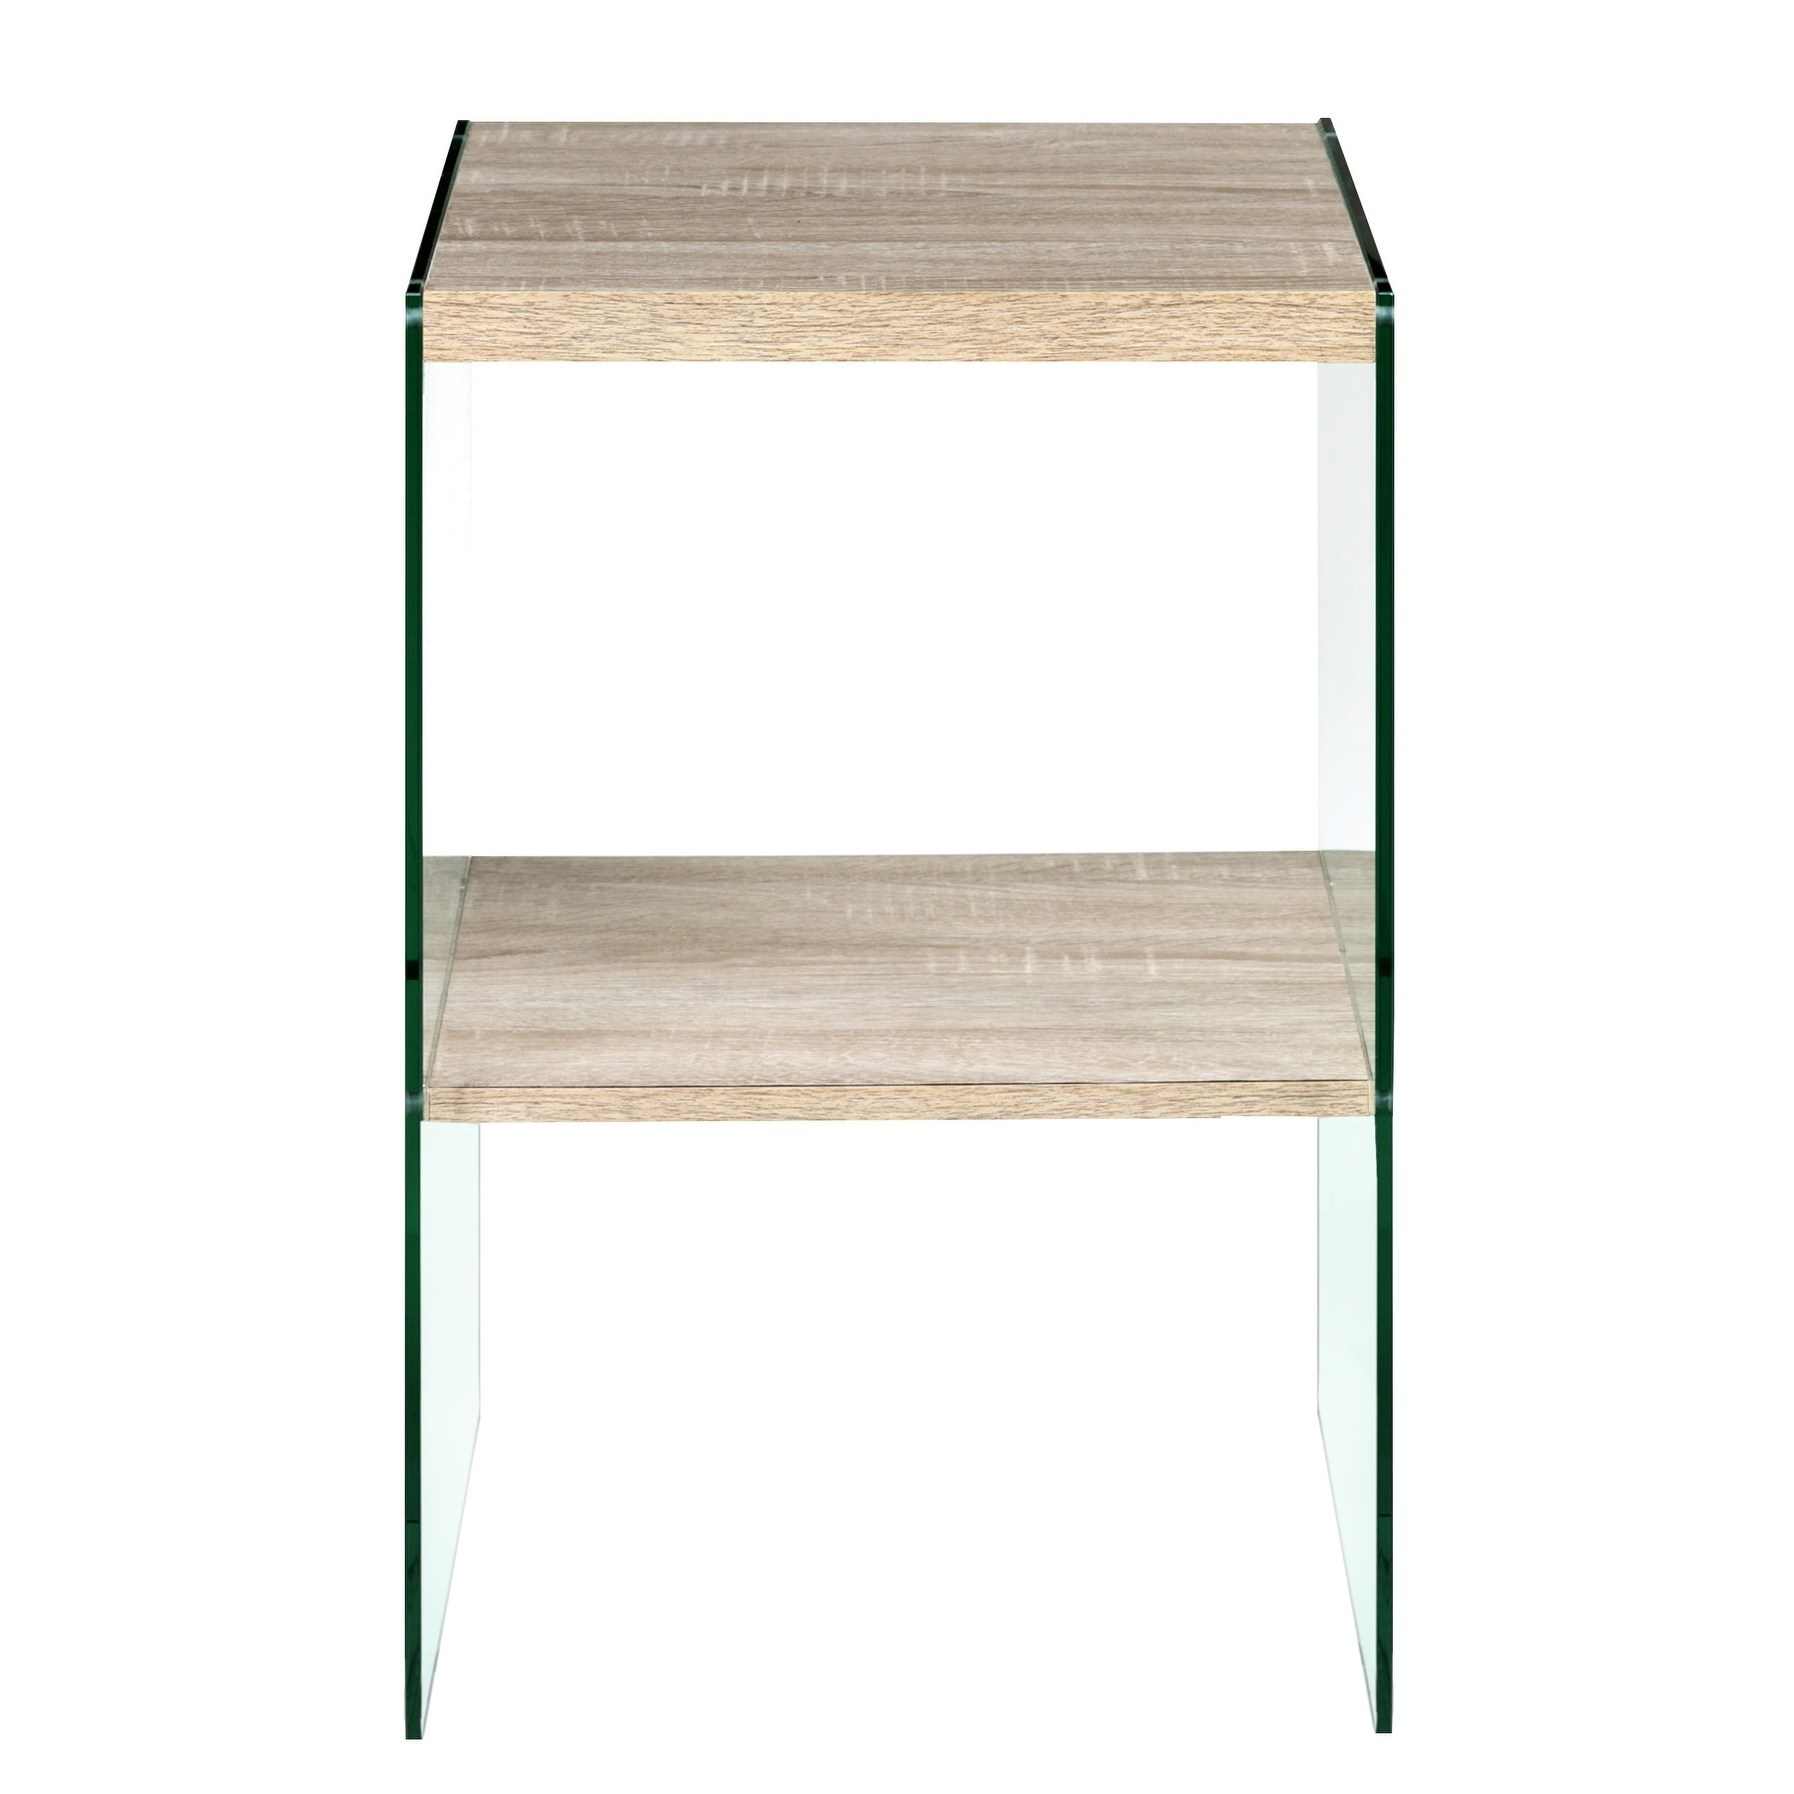 escher skye accent end table clear glass and wood light oak tables free shipping today patio furniture cushions clearance metal side with top ikea storage units black gold beach